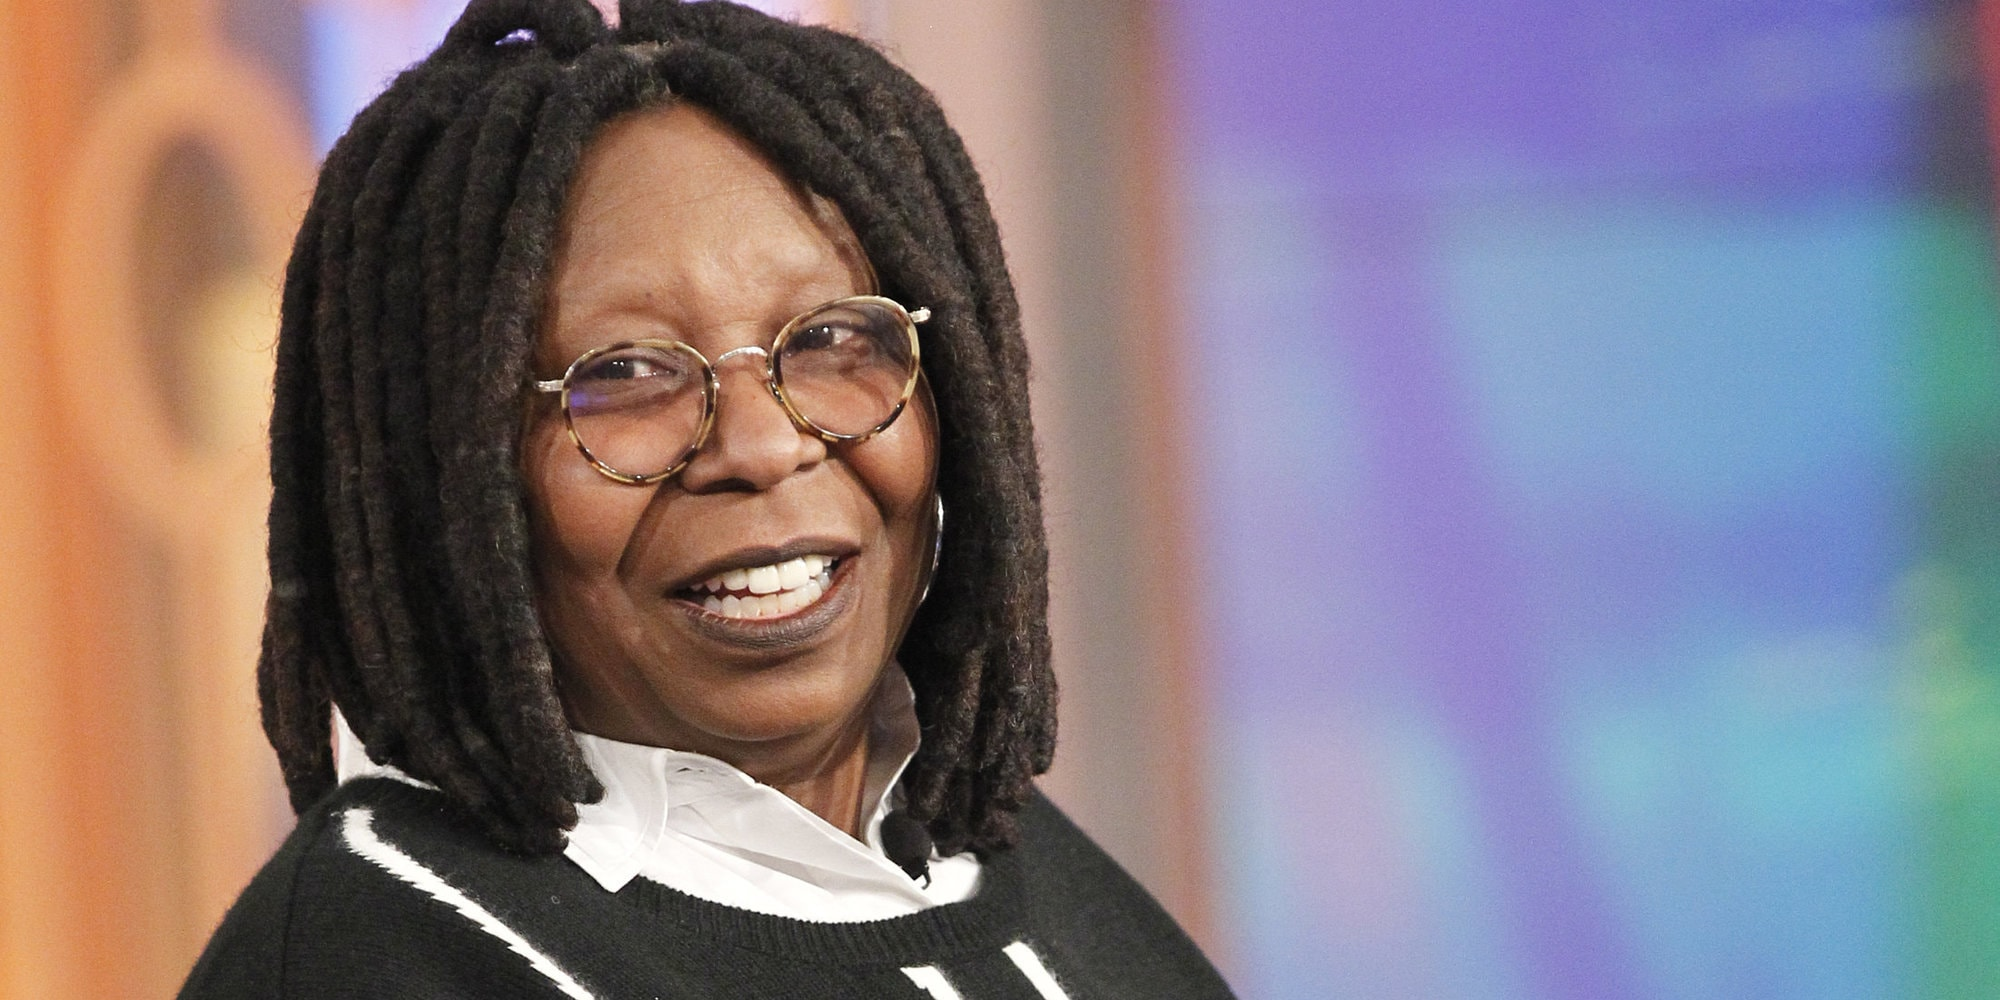 Whoopi Goldberg Desktop wallpaper